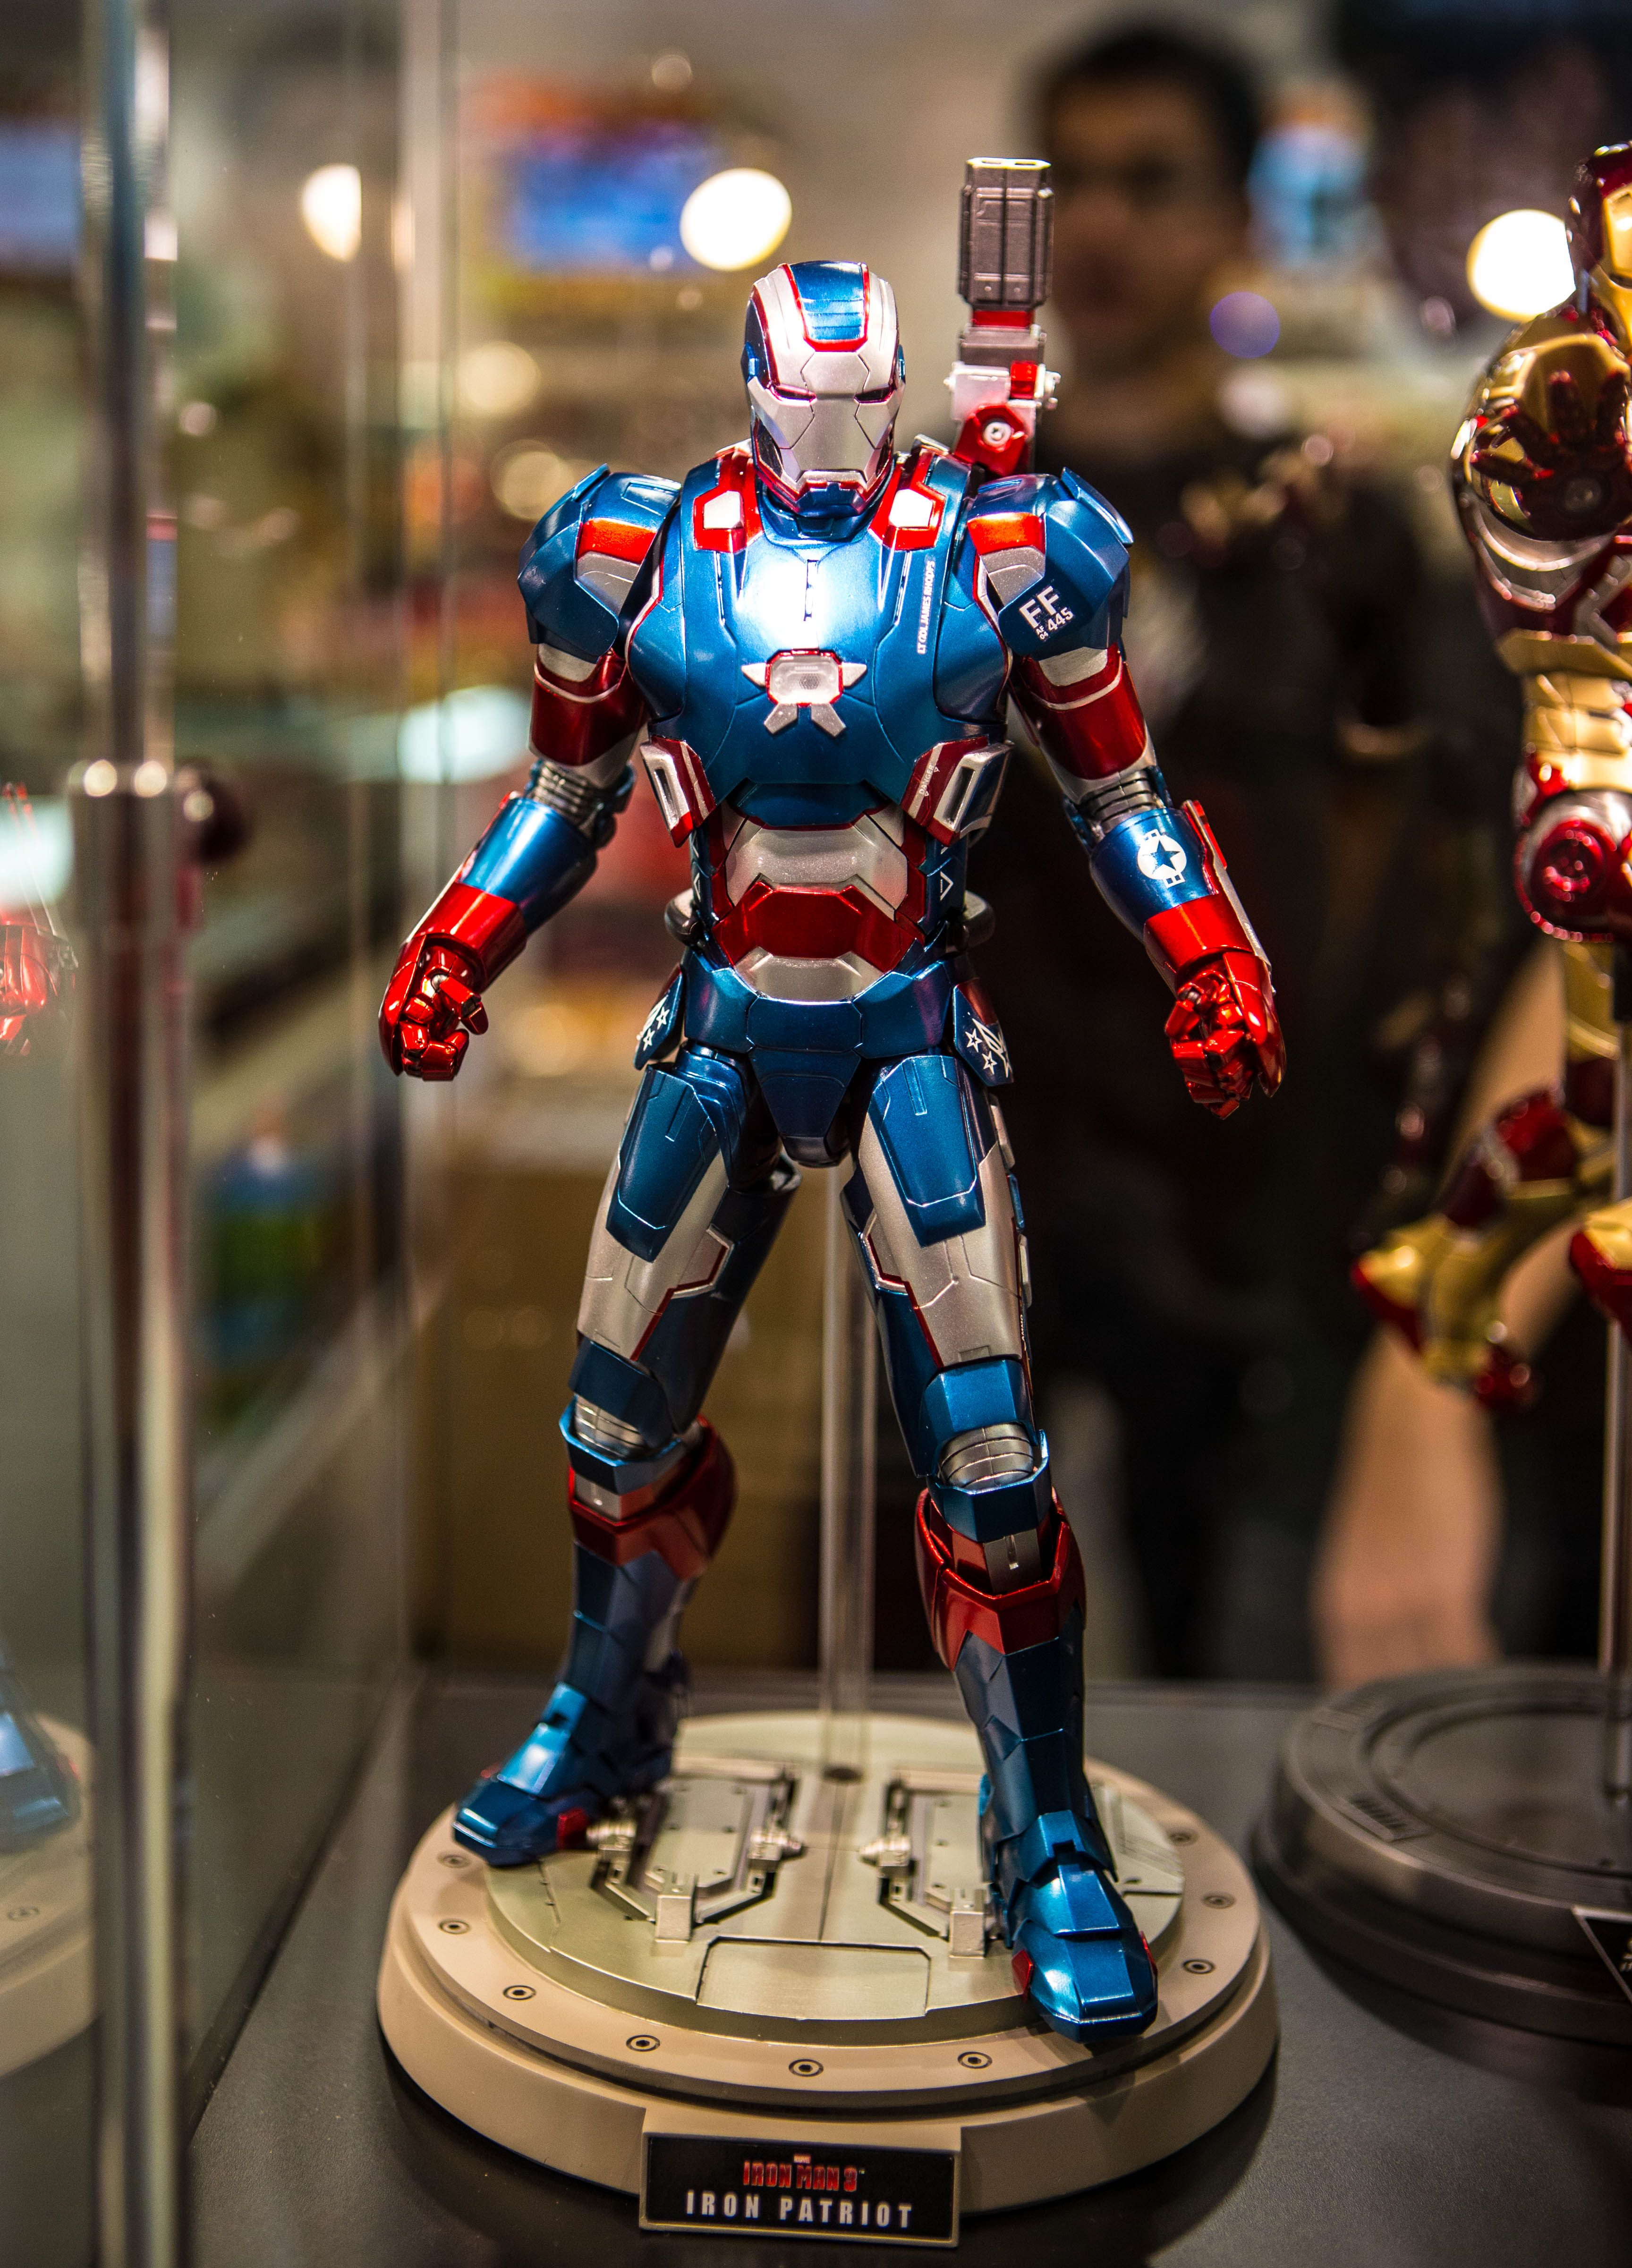 Hot Toys Iron Patriot Die-cast | comic book characters